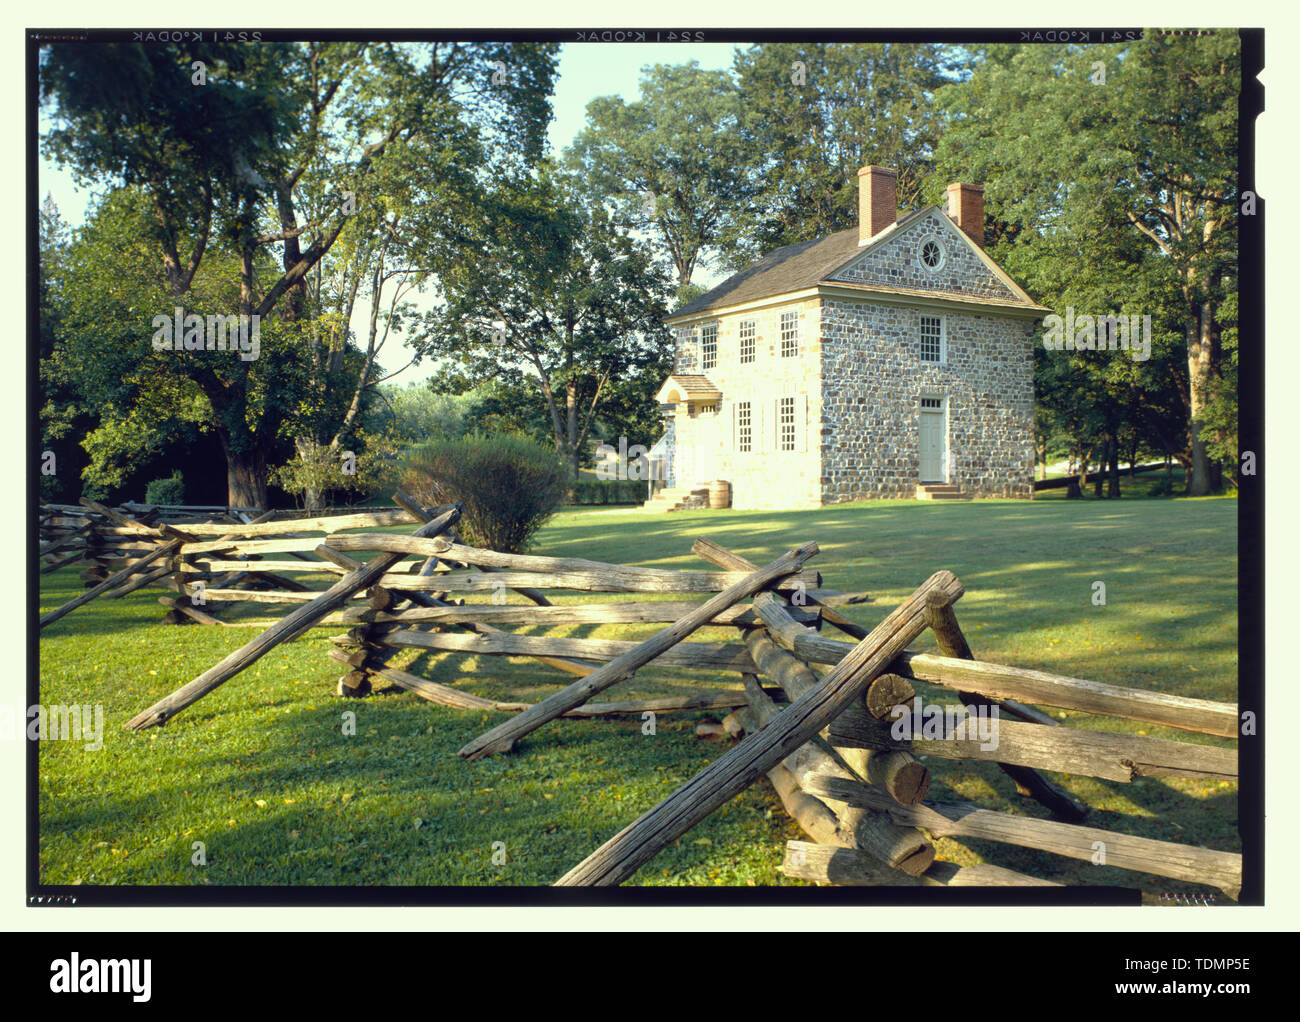 Perspective view (duplicate of HABS No. PA-1171-26) - Isaac Potts House, South of Schuylkill River, King of Prussia, Montgomery County, PA - Stock Image